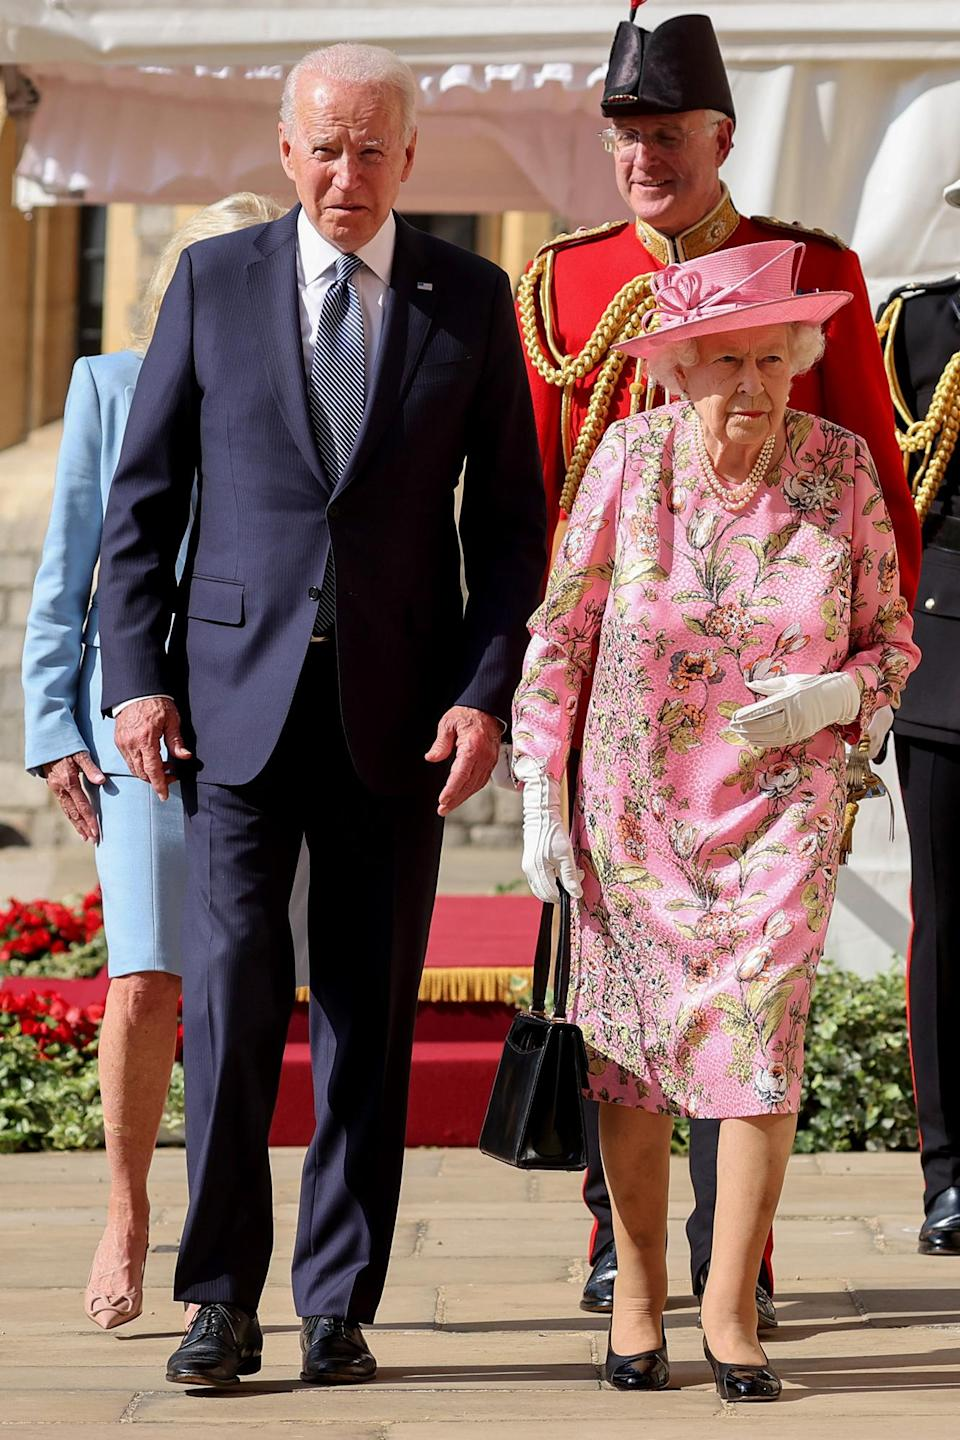 """<p>During their meeting, the president and Queen discussed world leaders Vladimir Putin and Xi Jinping, as well as <a href=""""https://people.com/royals/joe-biden-queen-elizabeth-meeting-g7-summit-visit/"""" rel=""""nofollow noopener"""" target=""""_blank"""" data-ylk=""""slk:life in the White House compared to Windsor"""" class=""""link rapid-noclick-resp"""">life in the White House compared to Windsor</a>.</p> <p>""""I said ... we could fit the White House in the courtyard,"""" the President joked of the castle, adding that he extended the Queen an invite to the White House.</p>"""